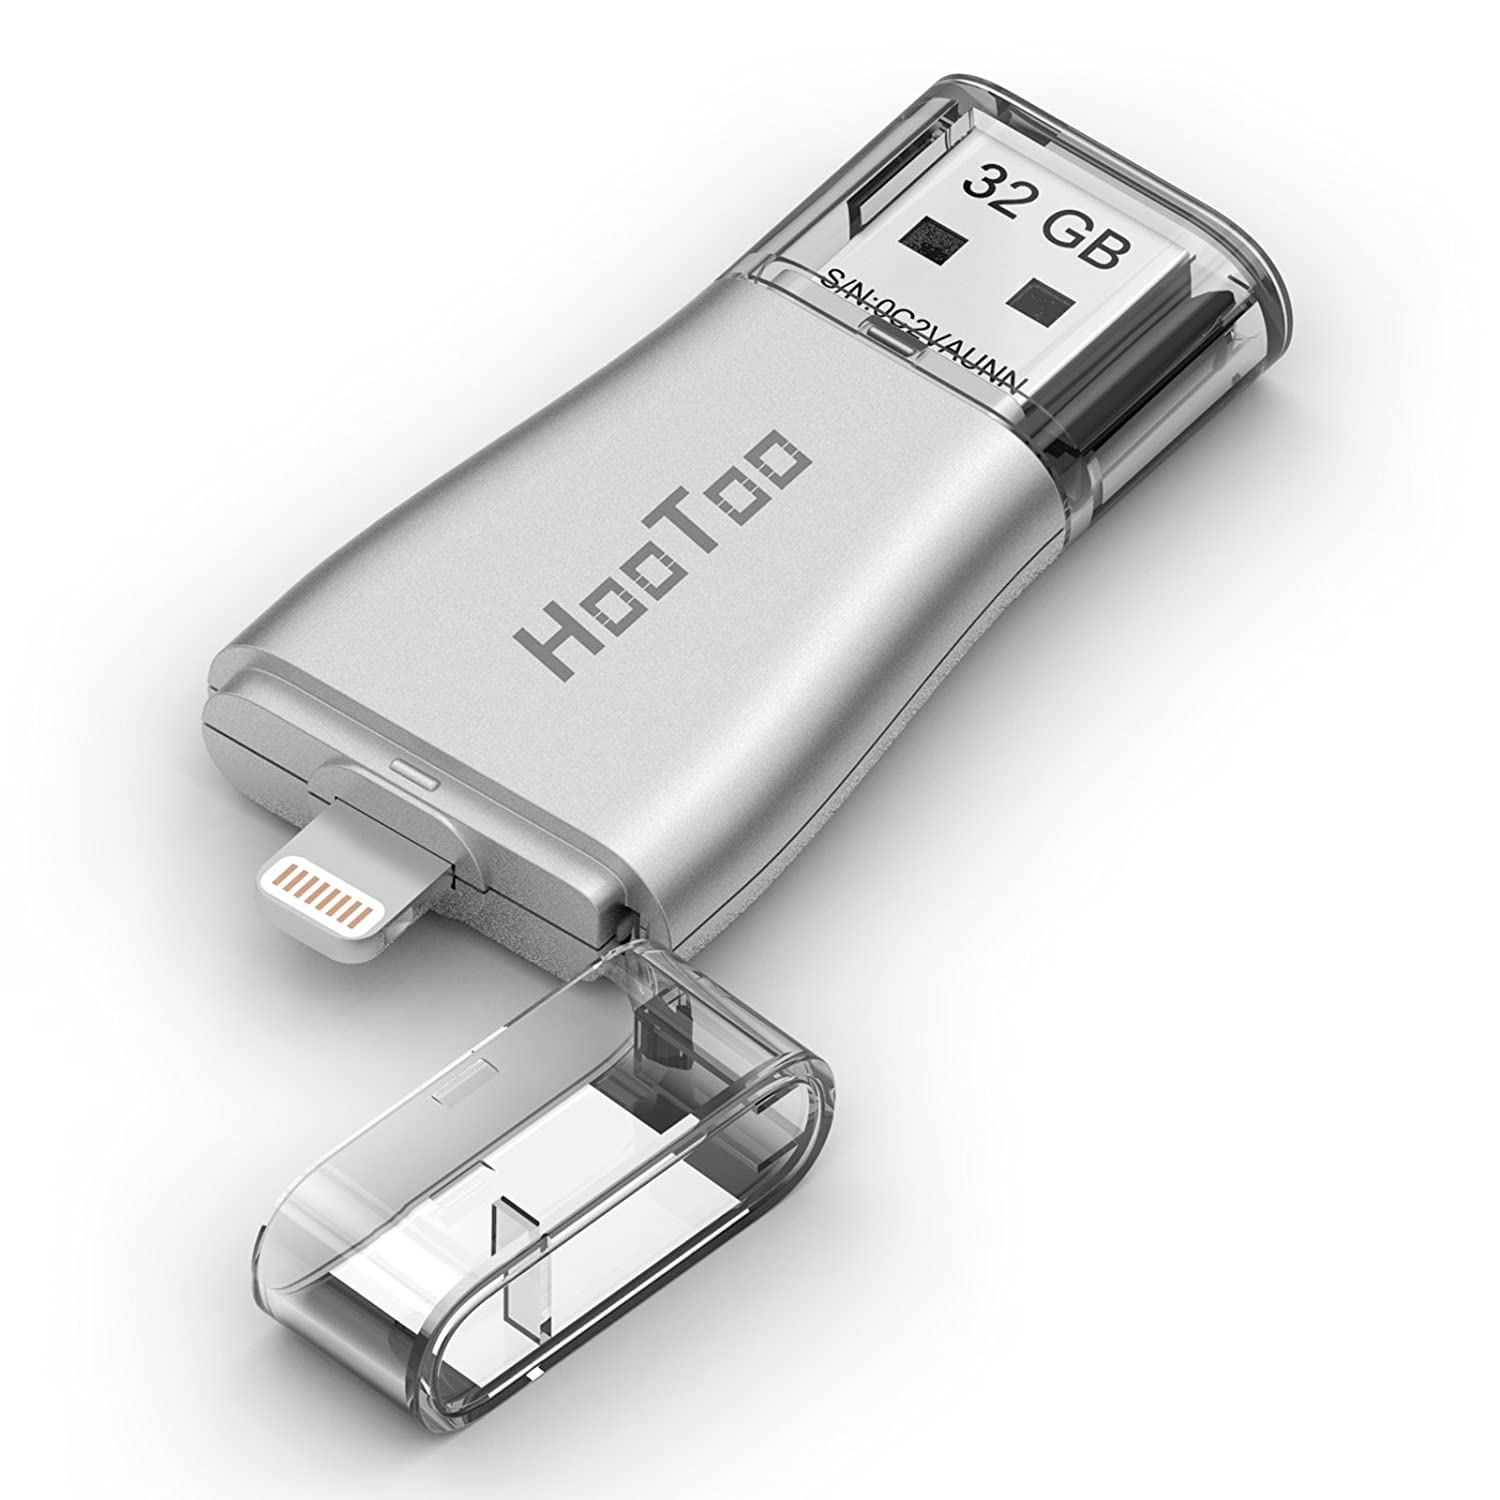 Amazon iPhone Flash Drive 32GB USB 3 0 Adapter with Lightning